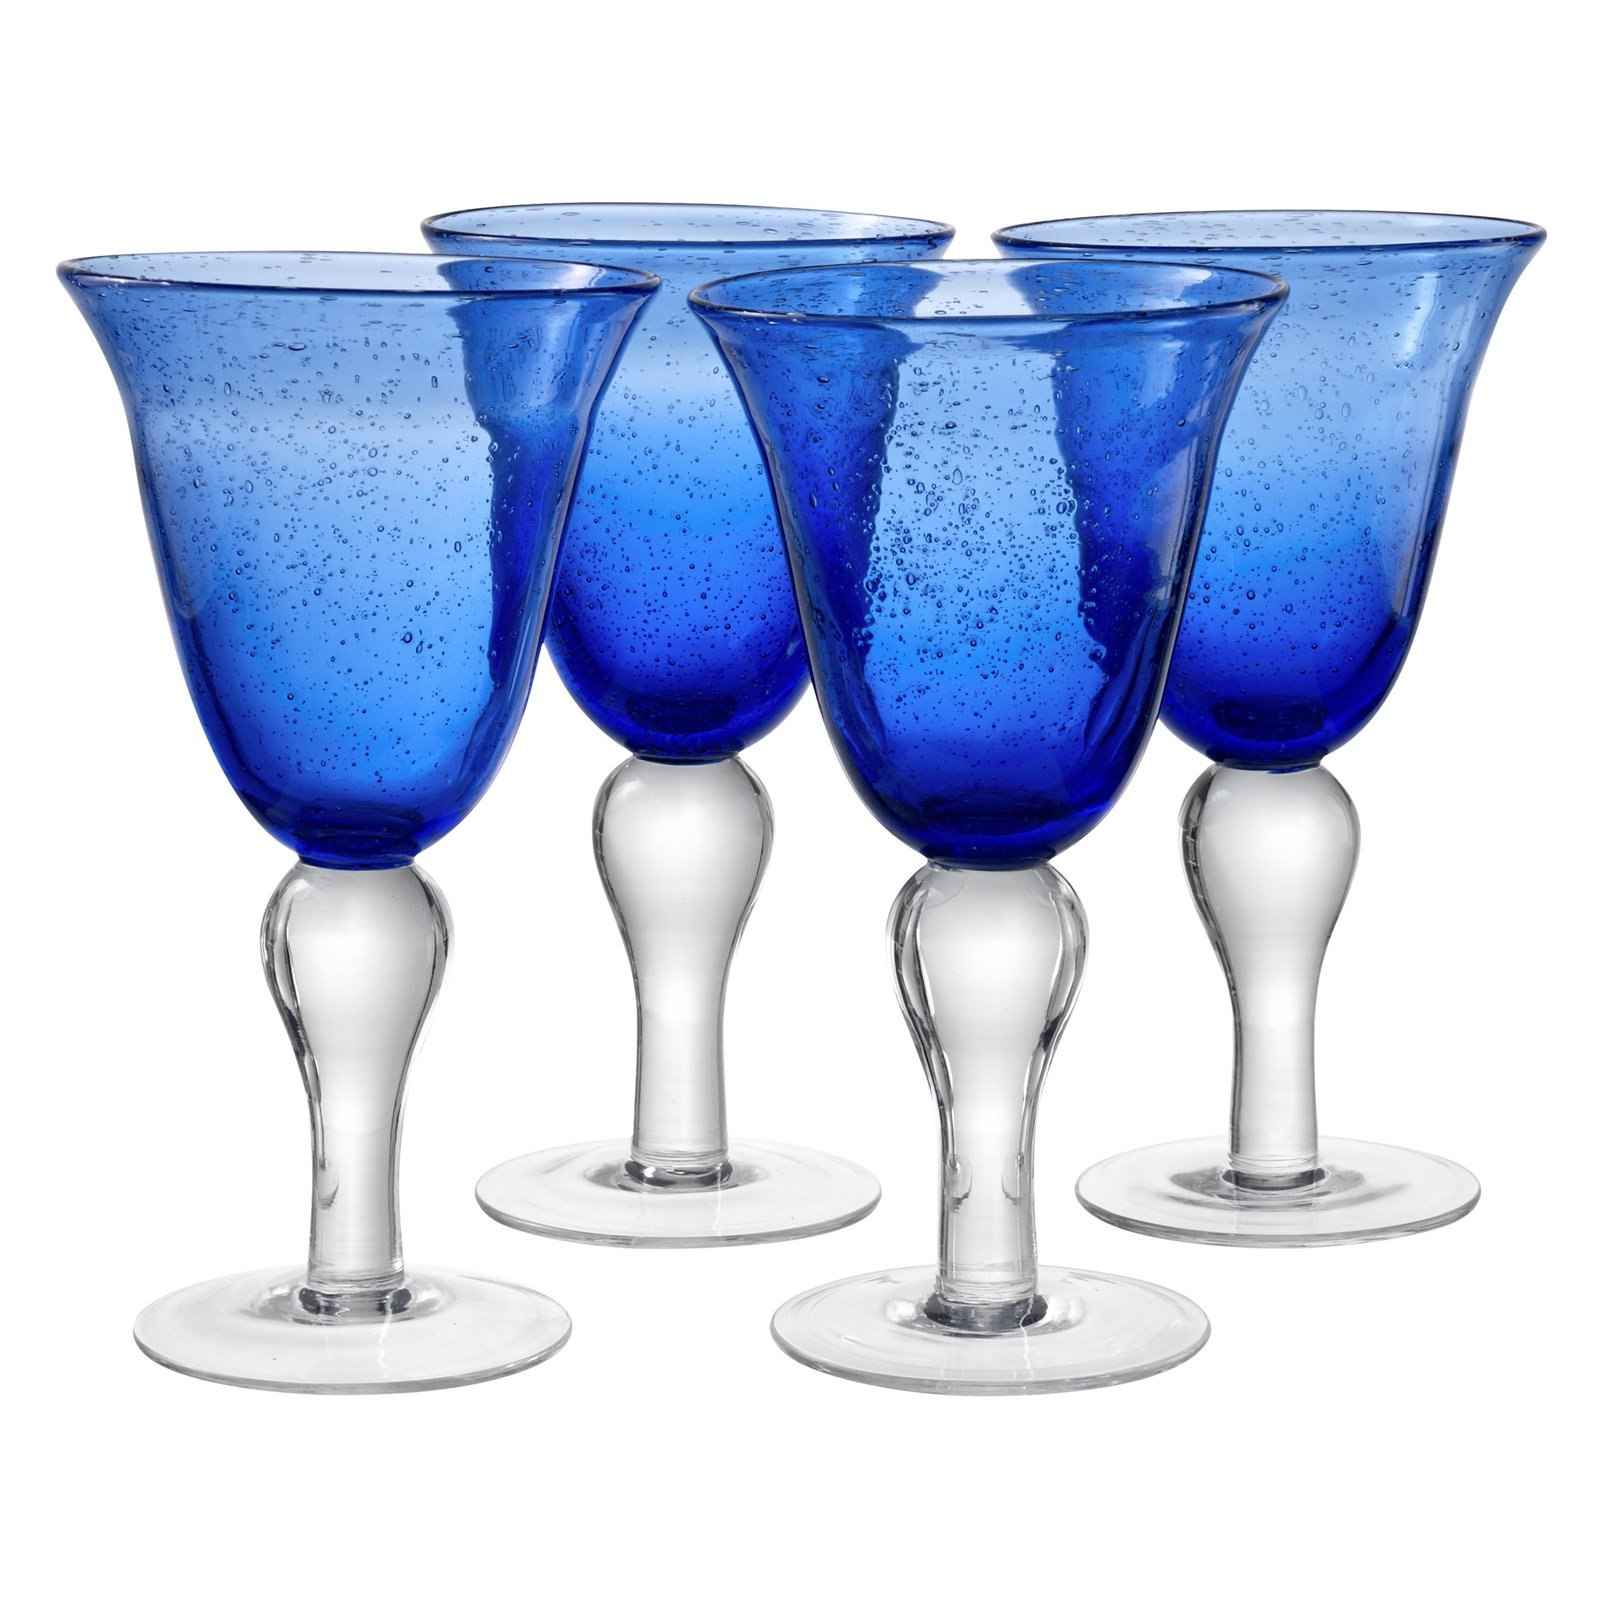 Artland Inc. Iris Cobalt Goblet Glasses - Set of 4